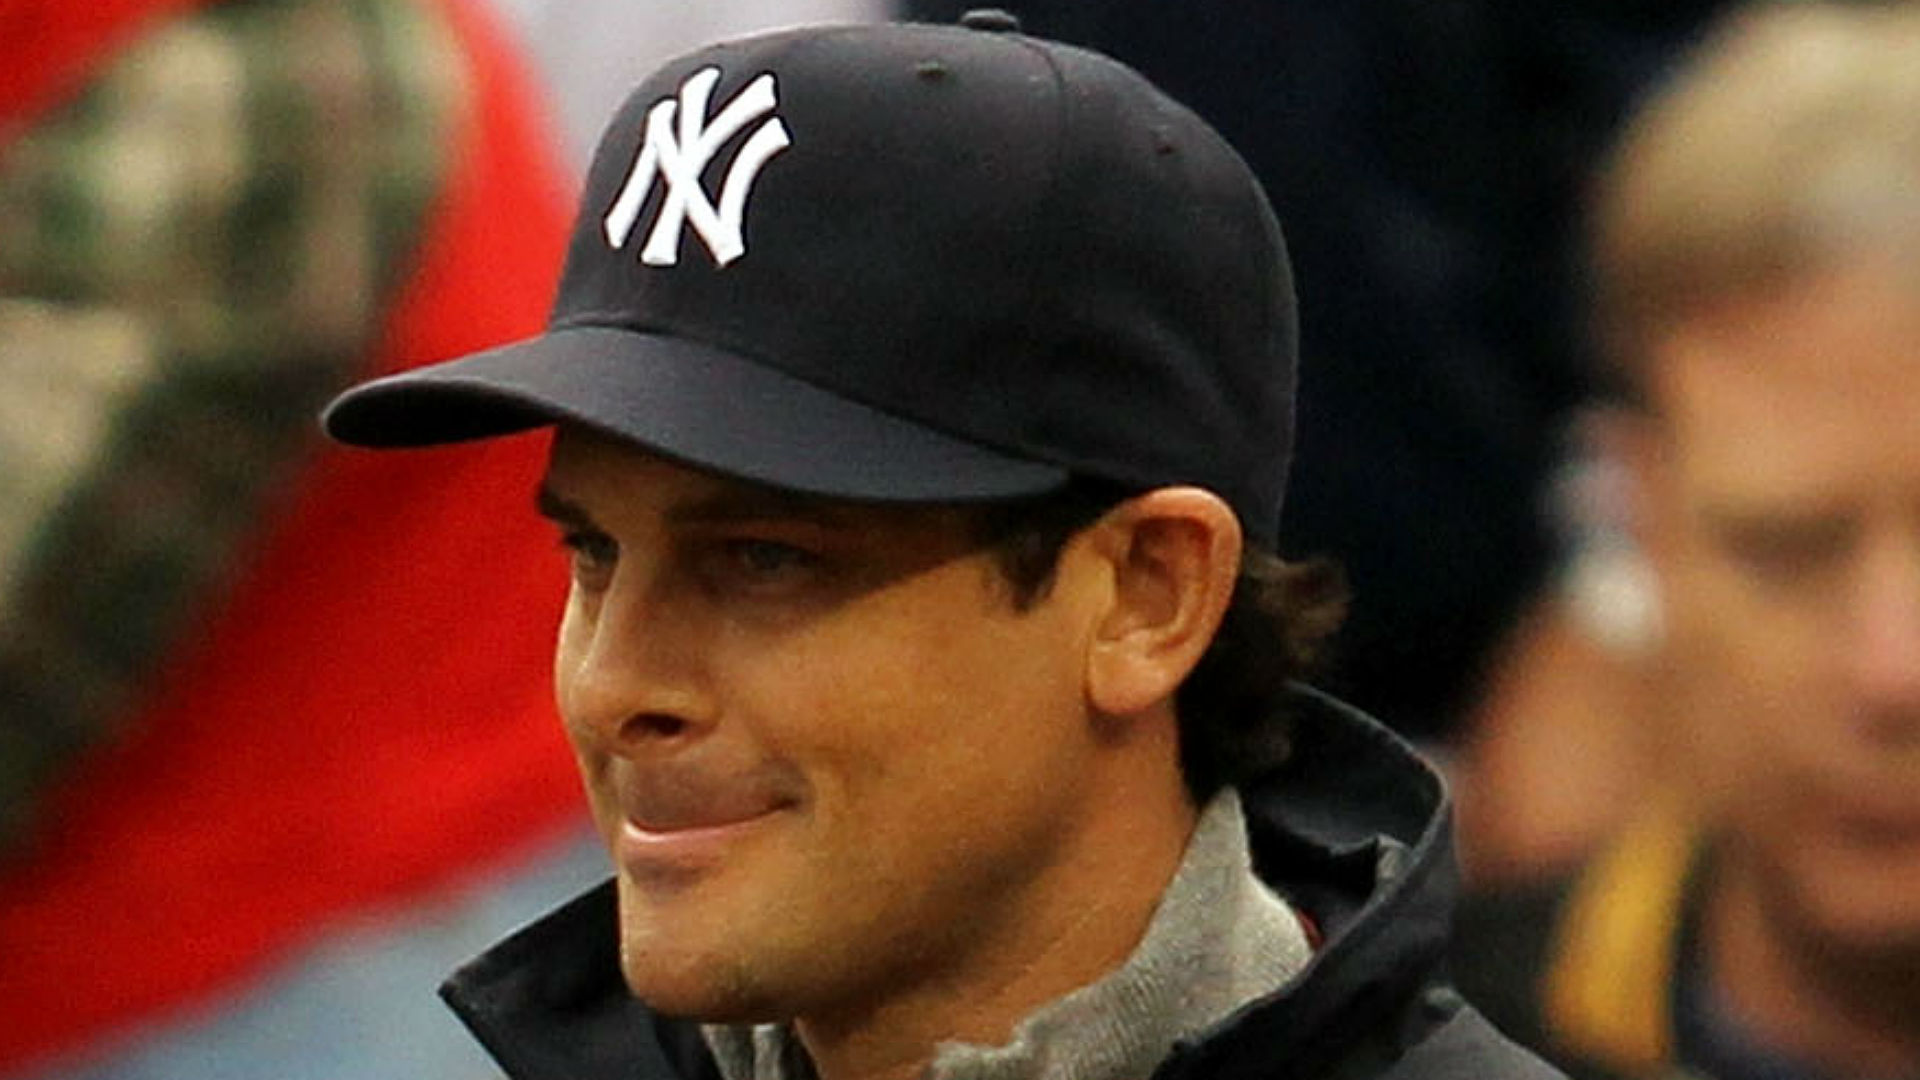 New Yankees manager Aaron Boone tries to distance himself from ALCS Game 7 homer